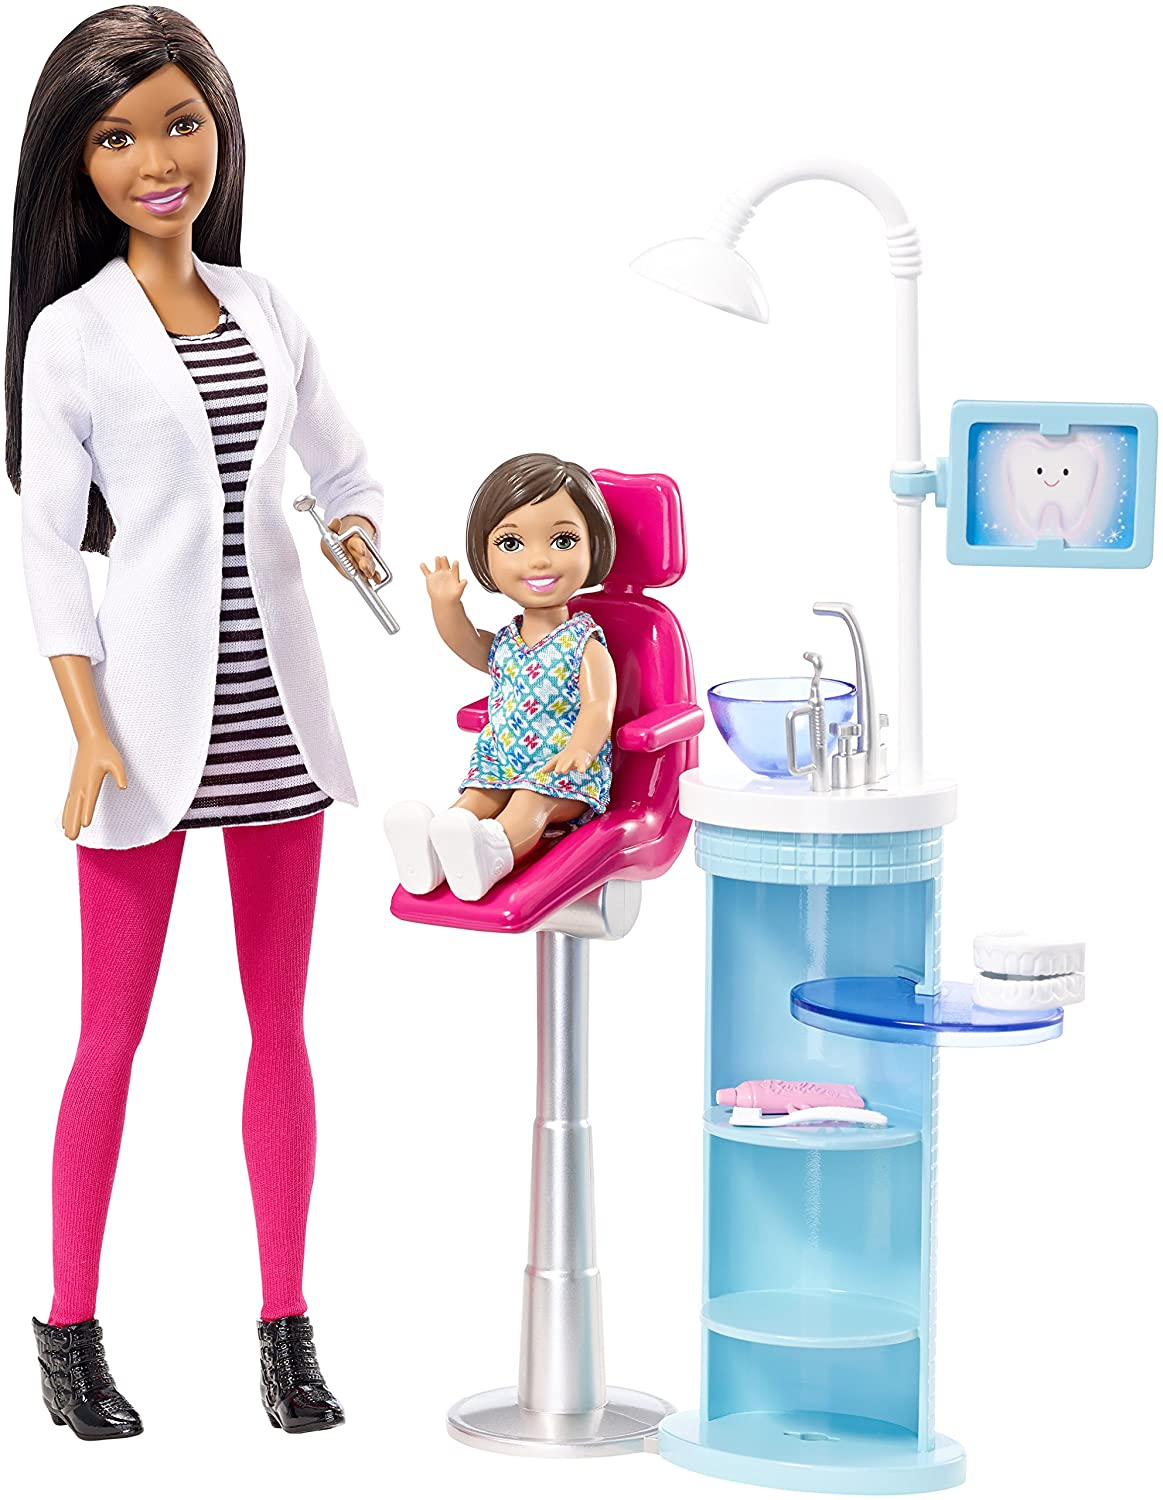 Amazon.com: Barbie Dentist Doll & Playset: Toys & Games